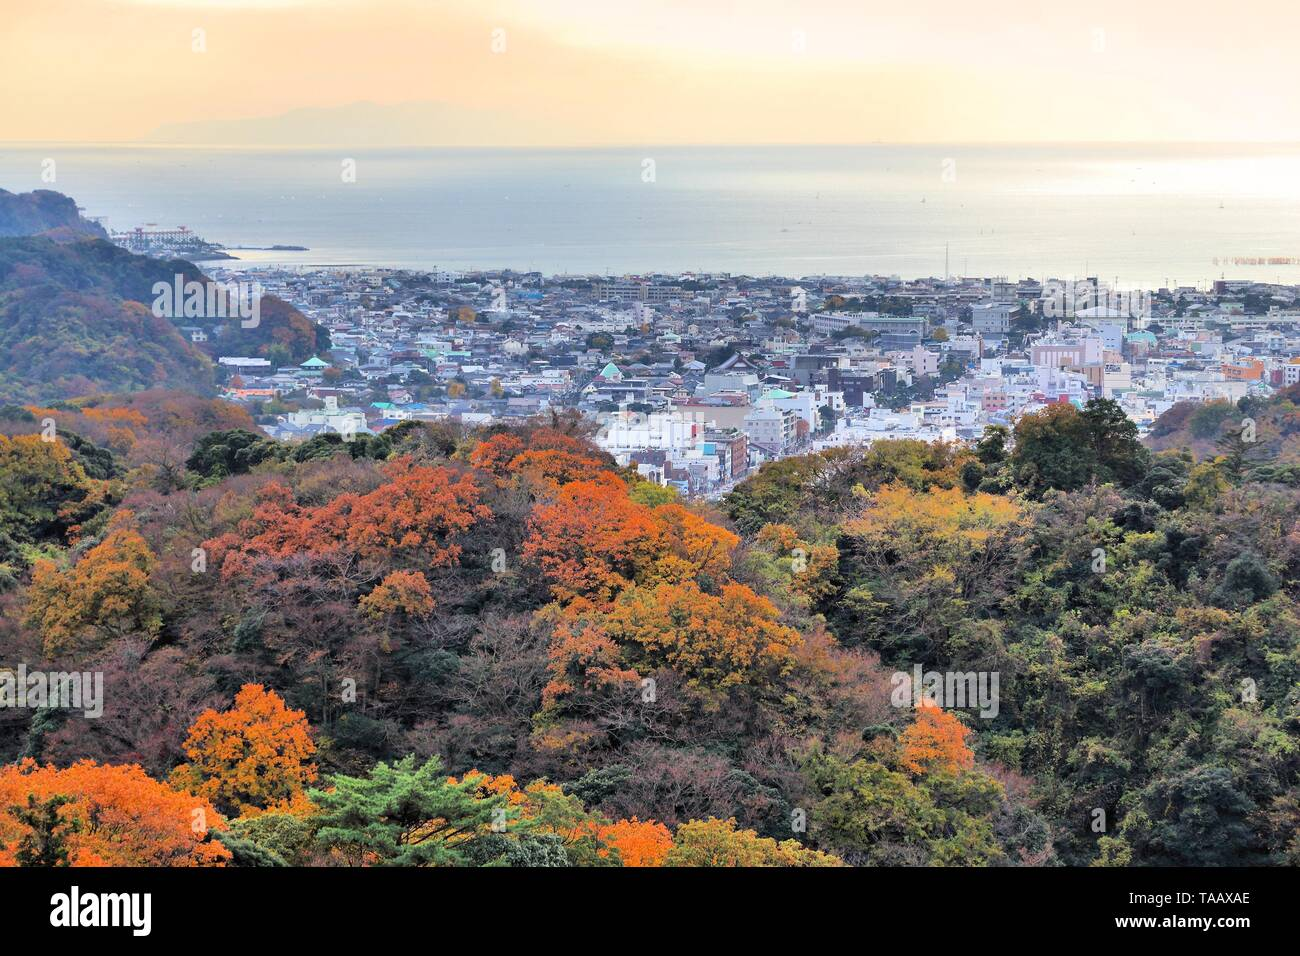 Kamakura, Japan. Aerial view with autumn forests. - Stock Image